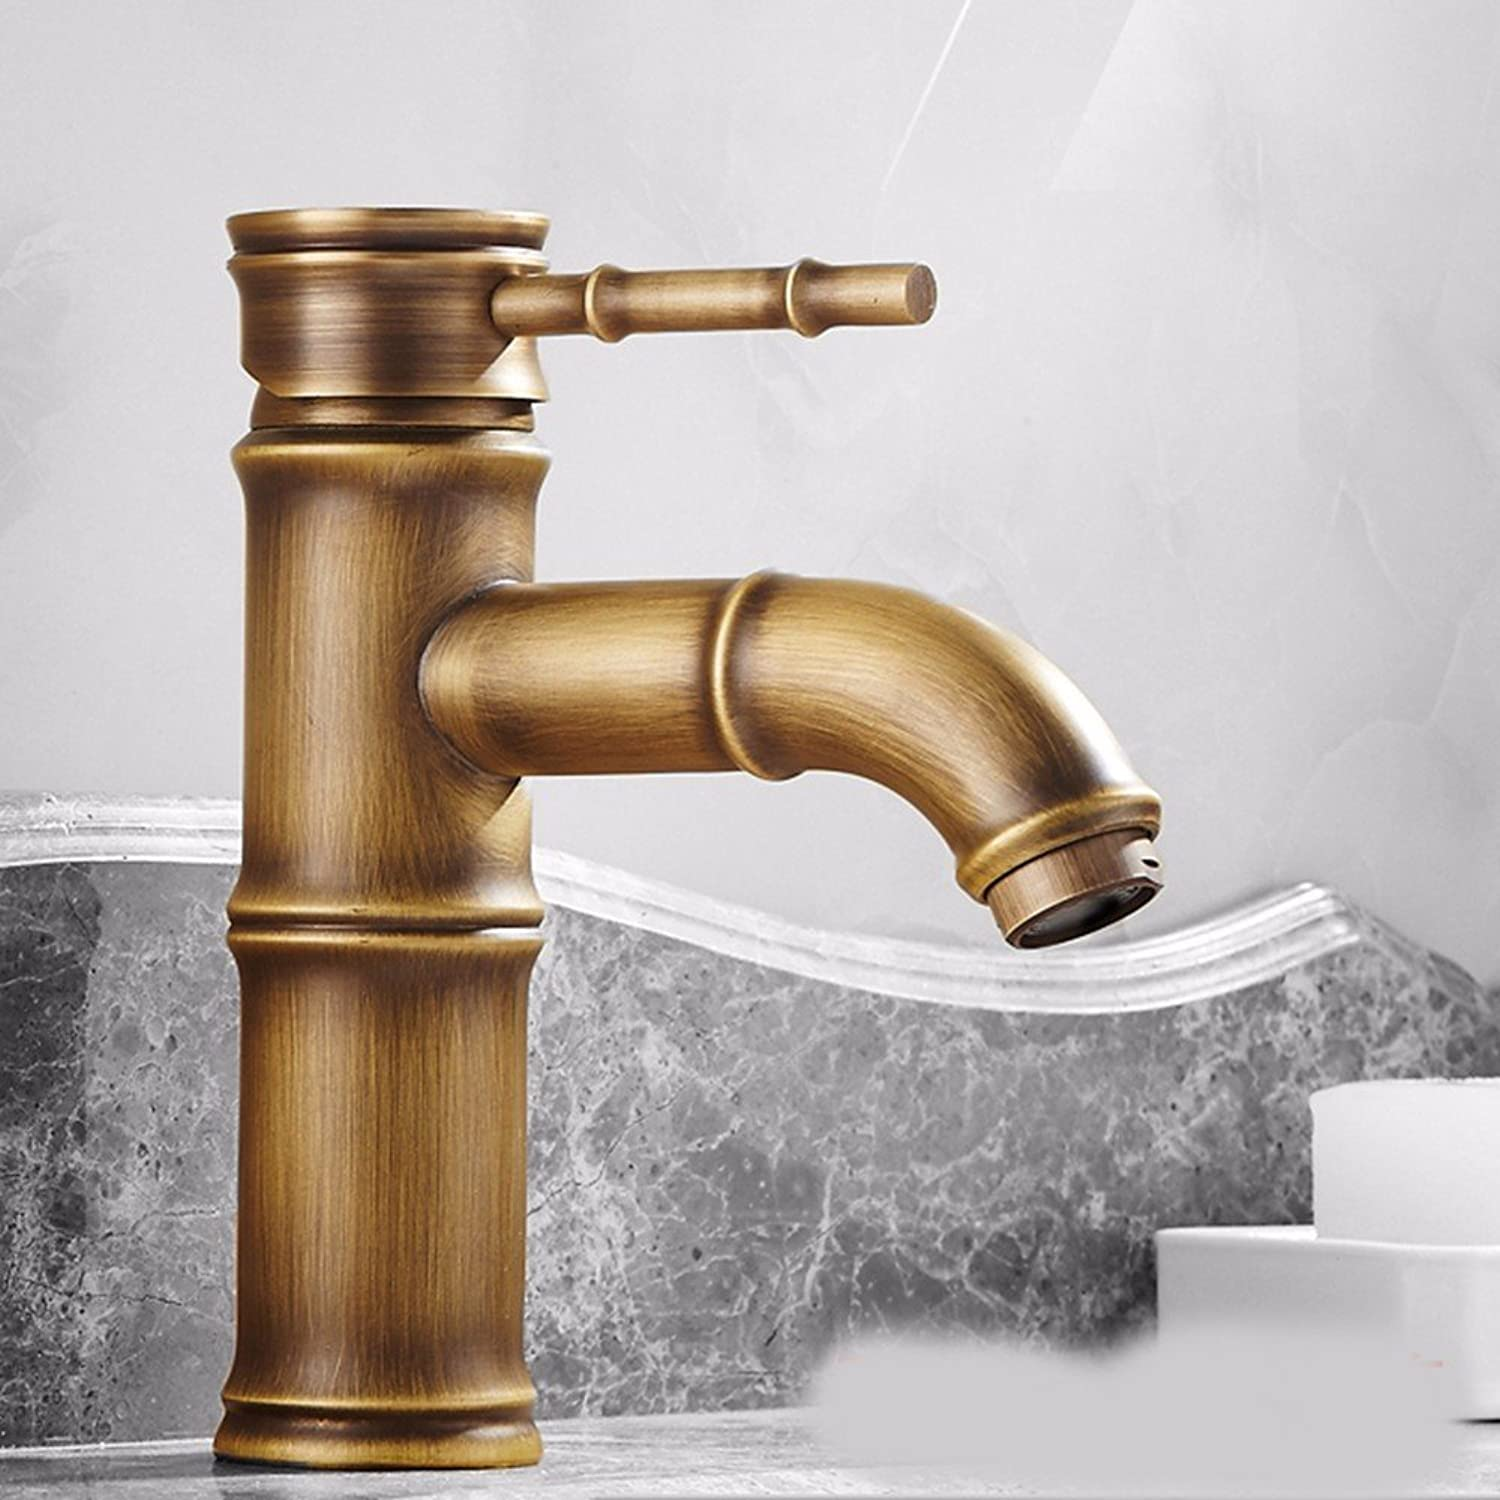 AWXJX European style retro style copper Hot and cold Wash basin Single hole bathroom Faucet